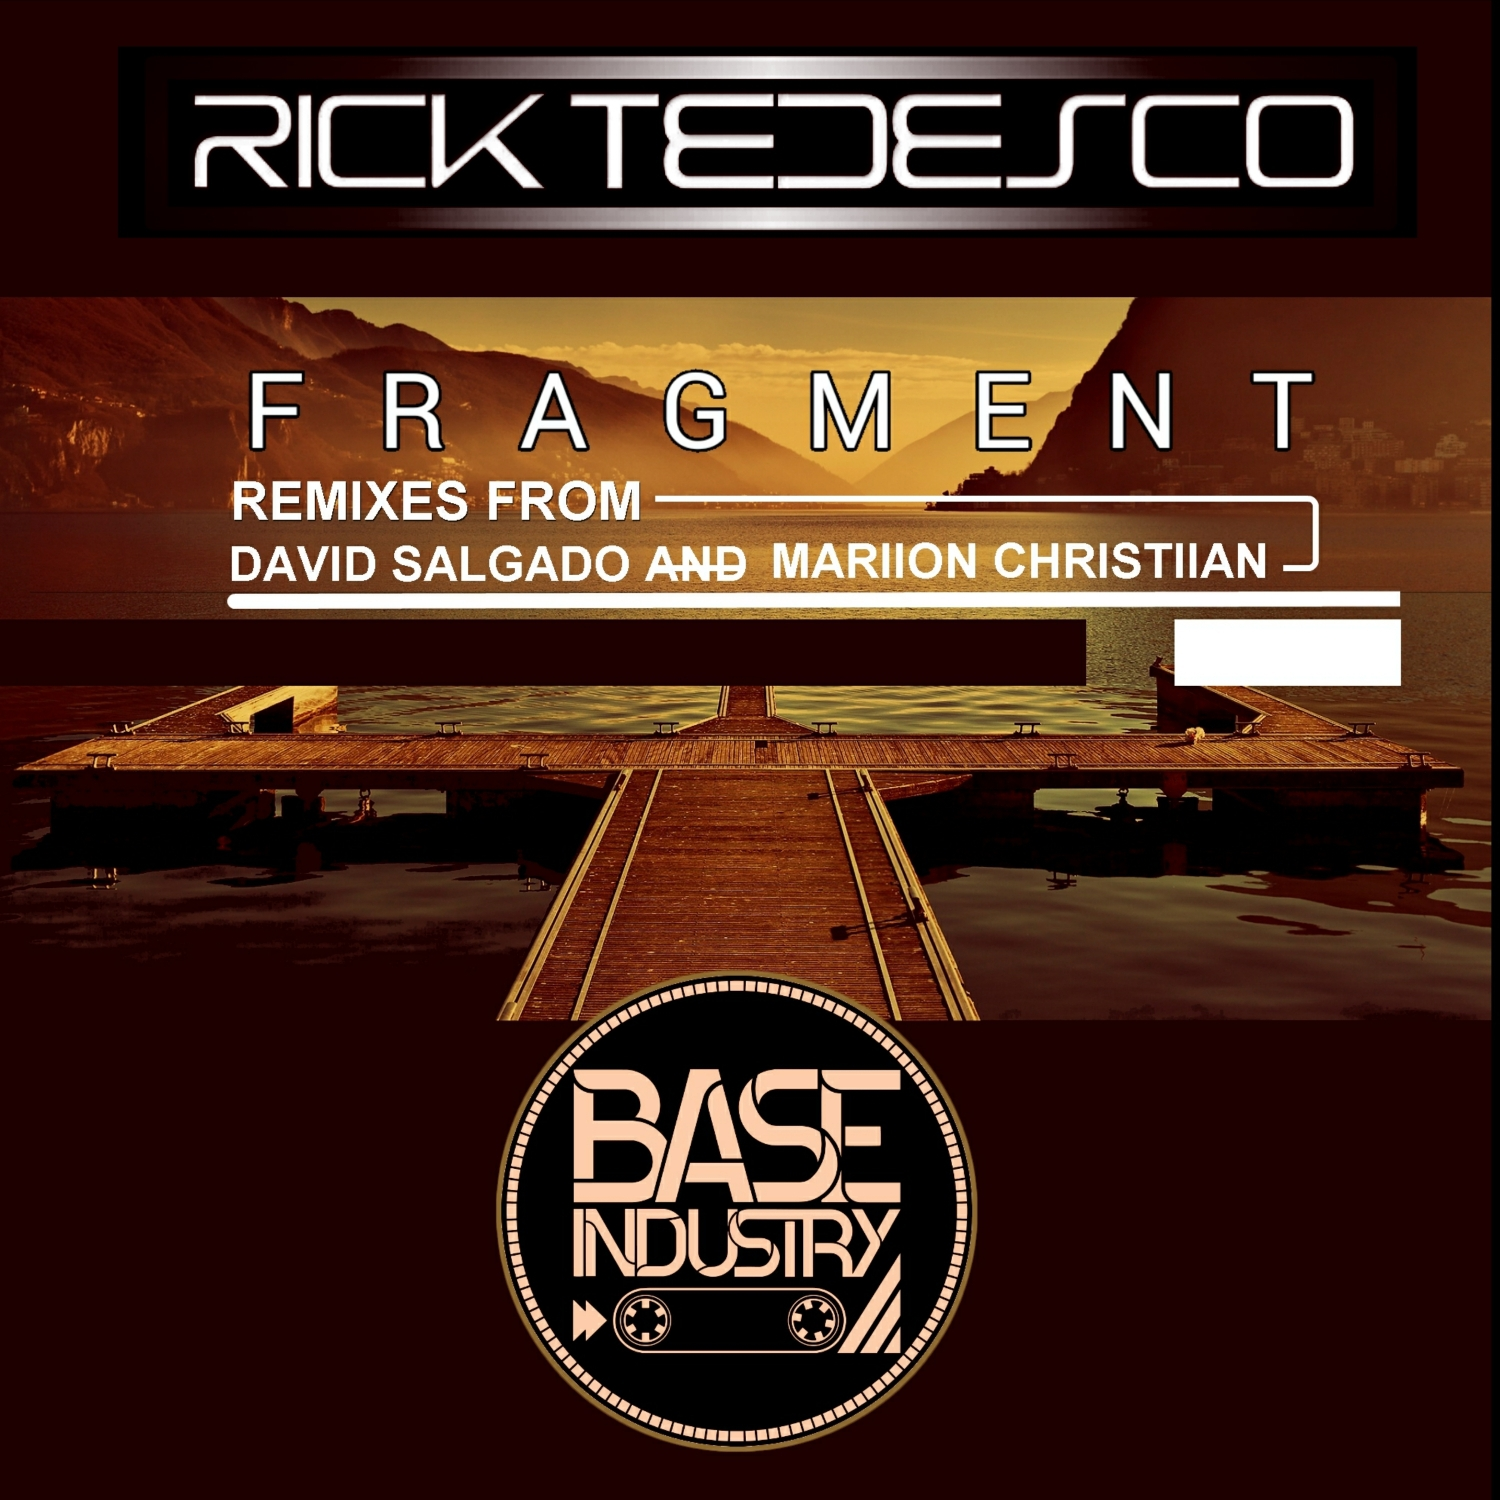 Rick Tedesco - Fragment (Original Mix)